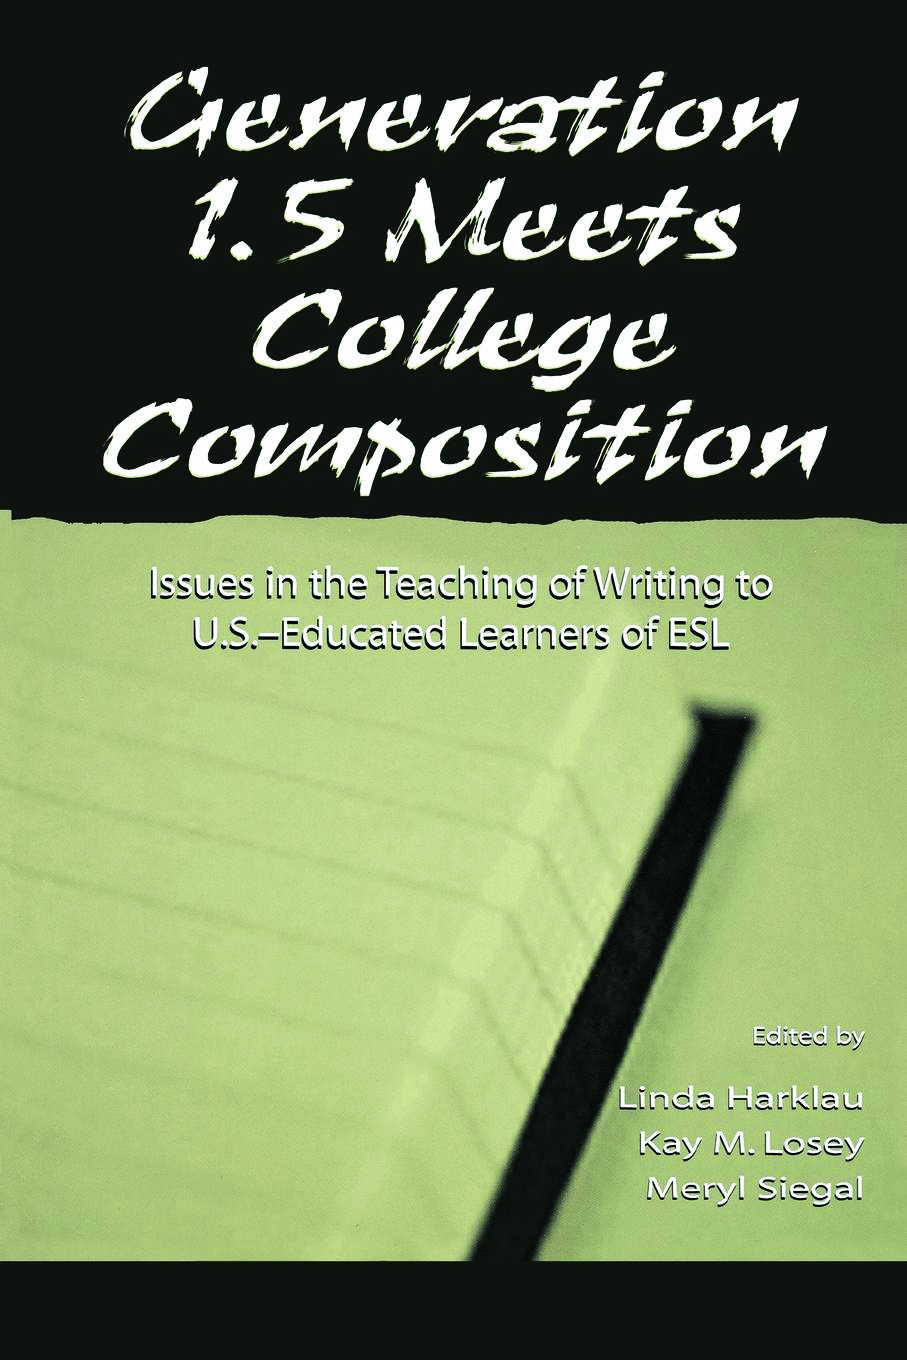 Generation 1.5 Meets College Composition: Issues in the Teaching of Writing To U.S.-Educated Learners of ESL (Paperback) book cover